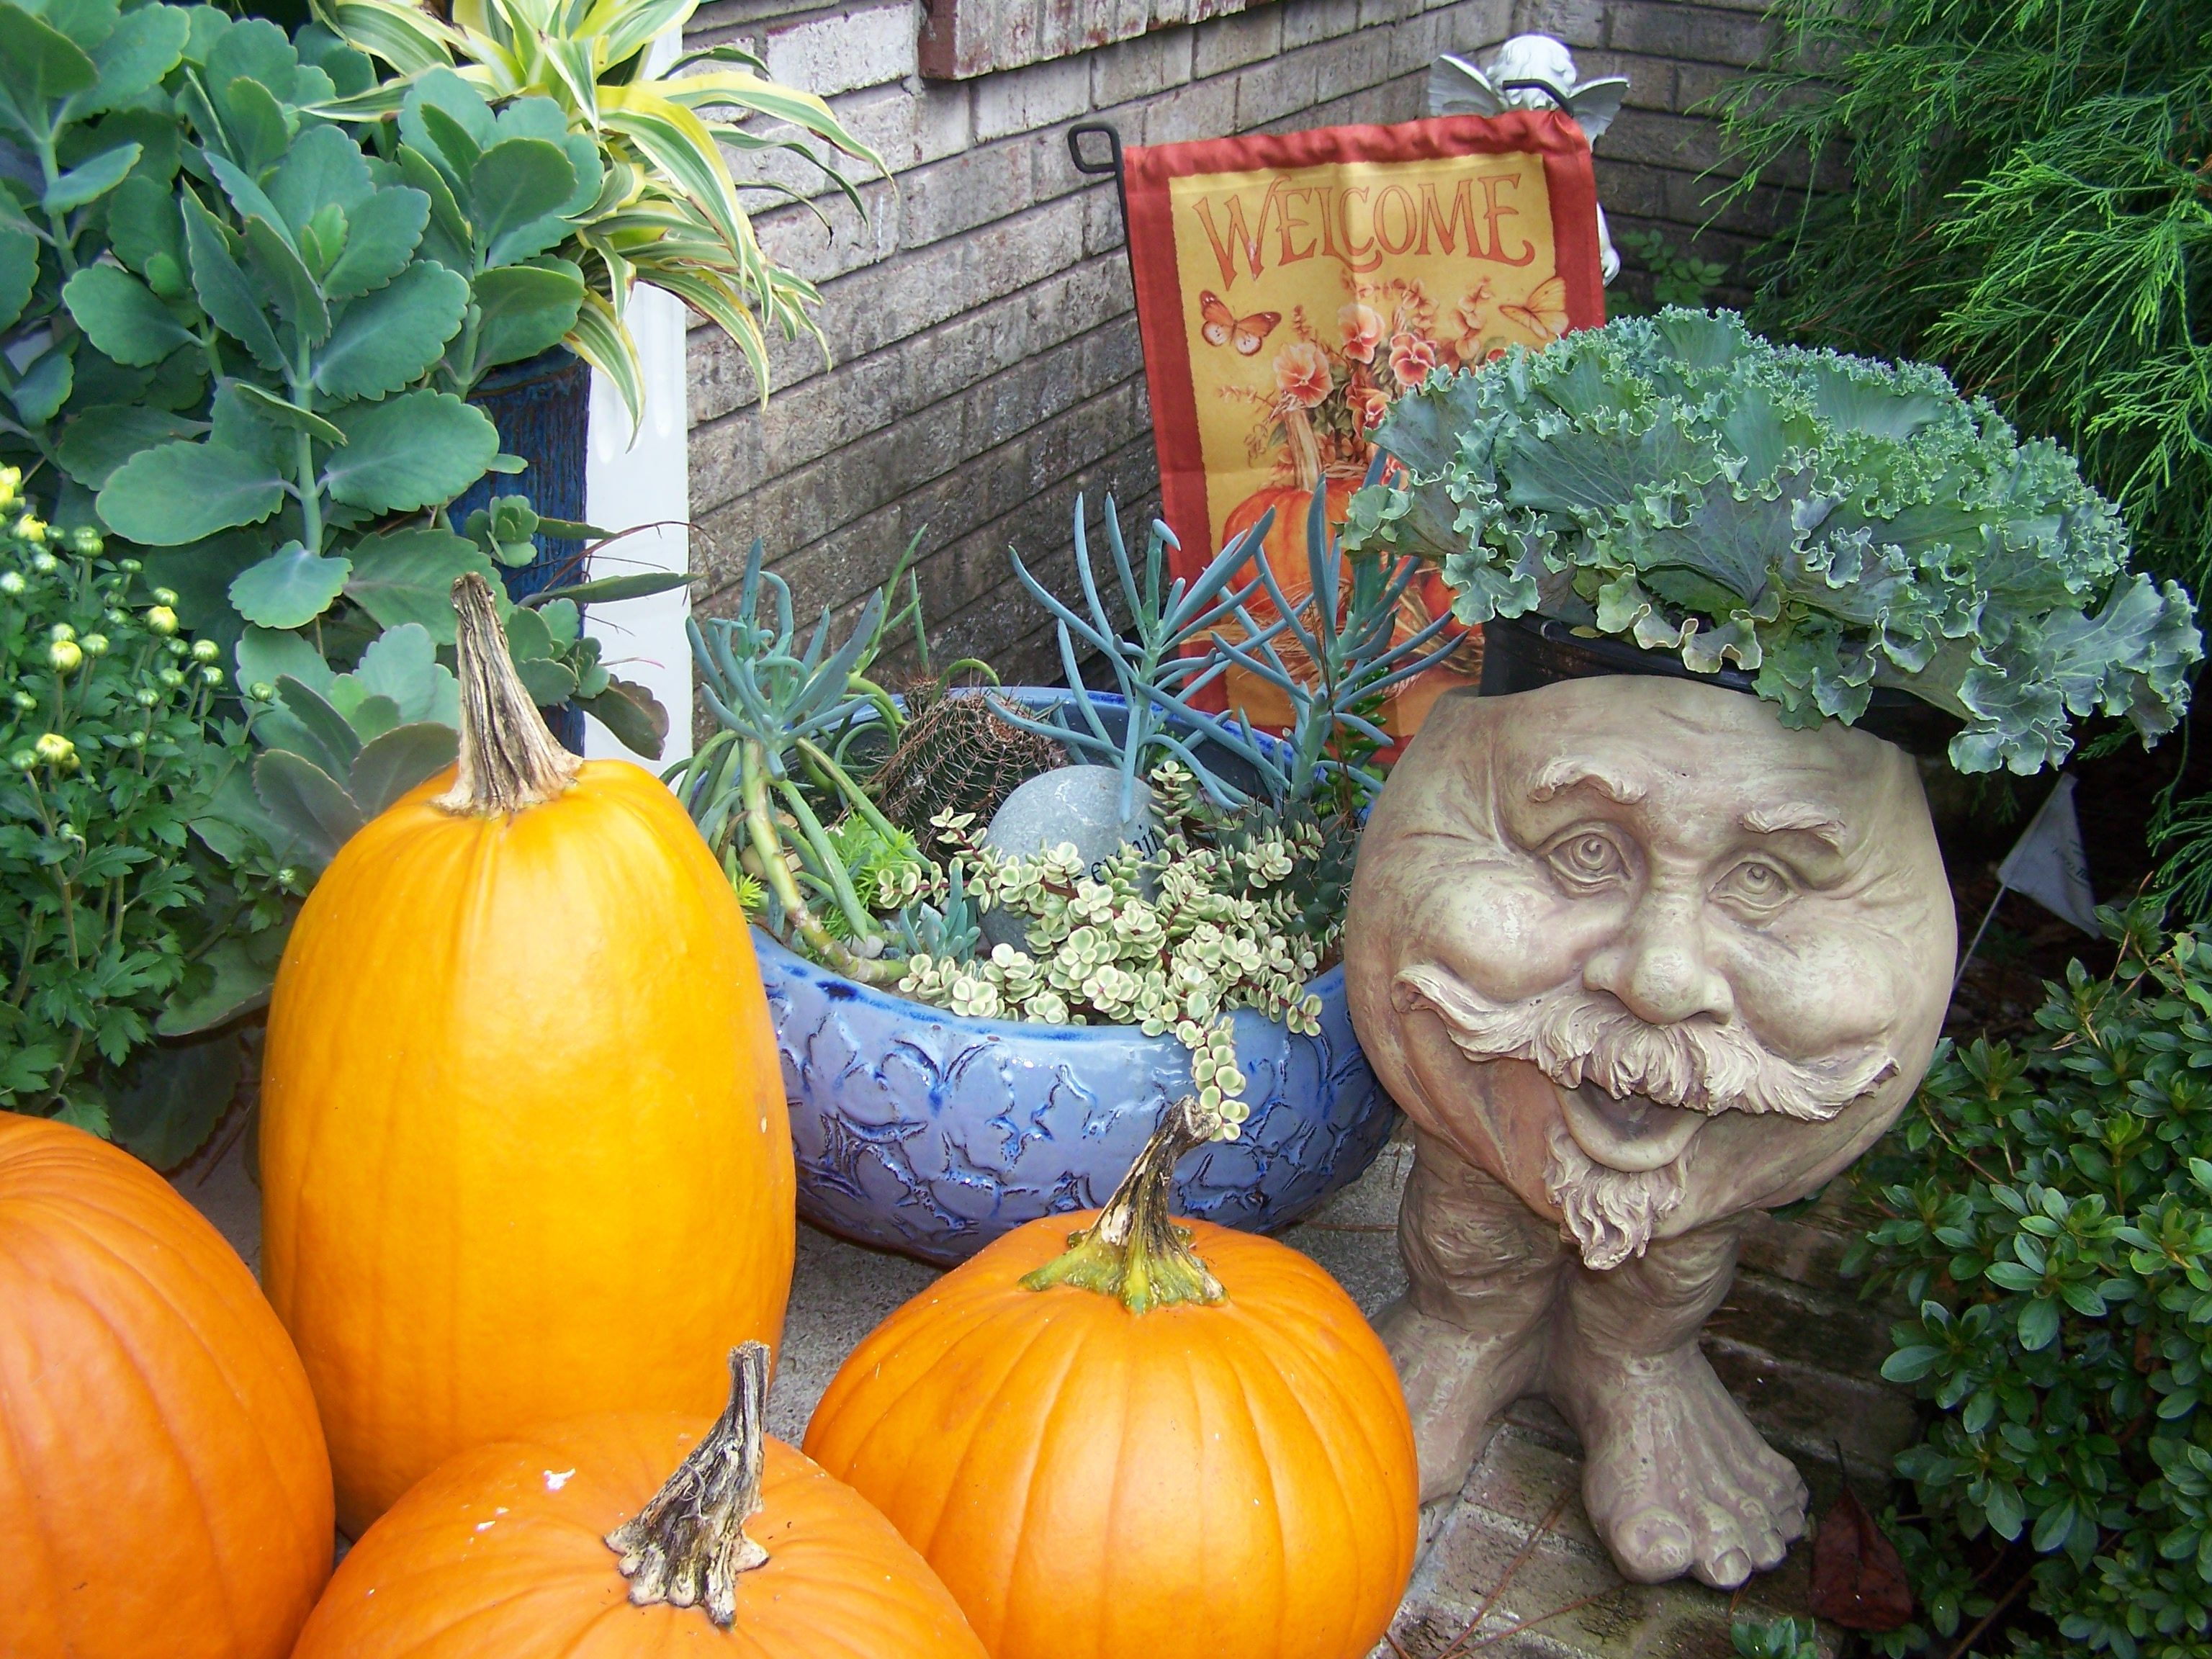 Mr. Cabbage Head tends the pumpkin patch.